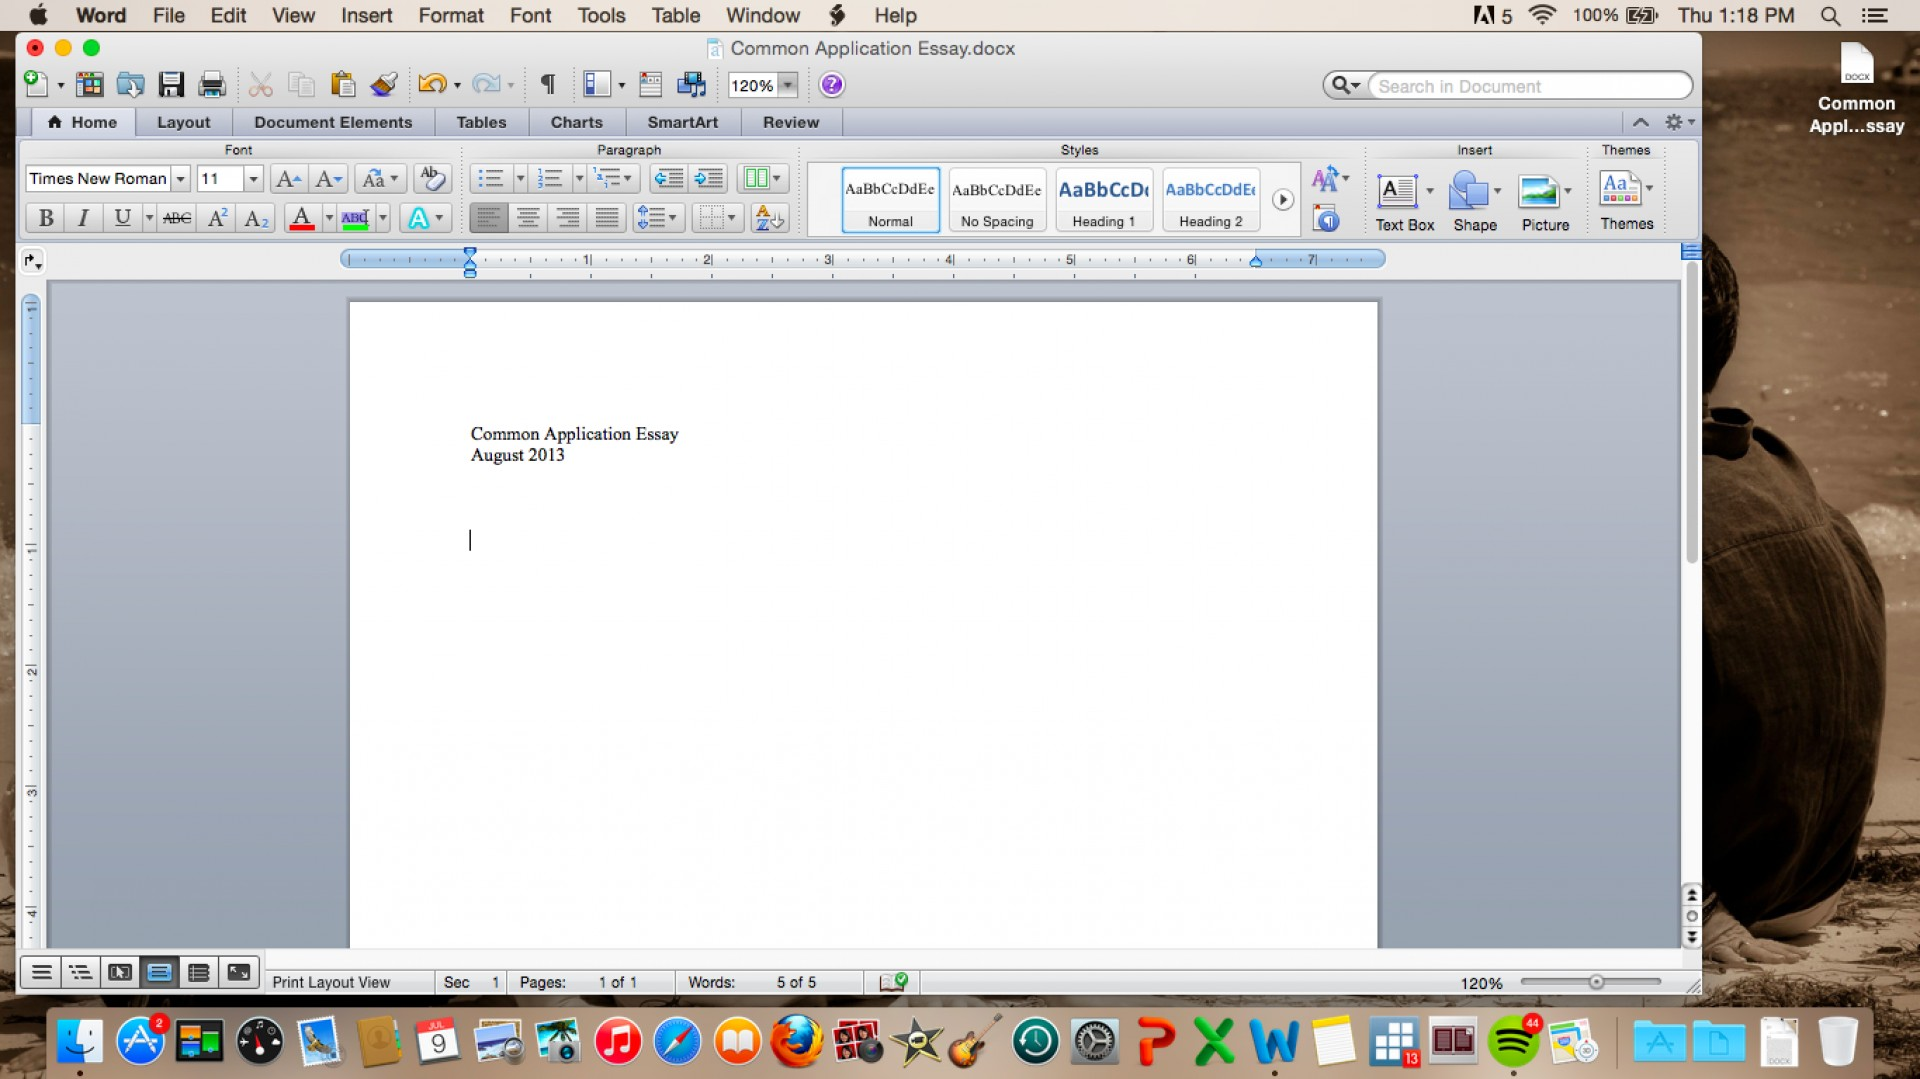 002 Harvard Essay Prompt Screen Shot 2015 09 At 1 22 Pm Astounding Prompts 2017-18 College 2017 1920